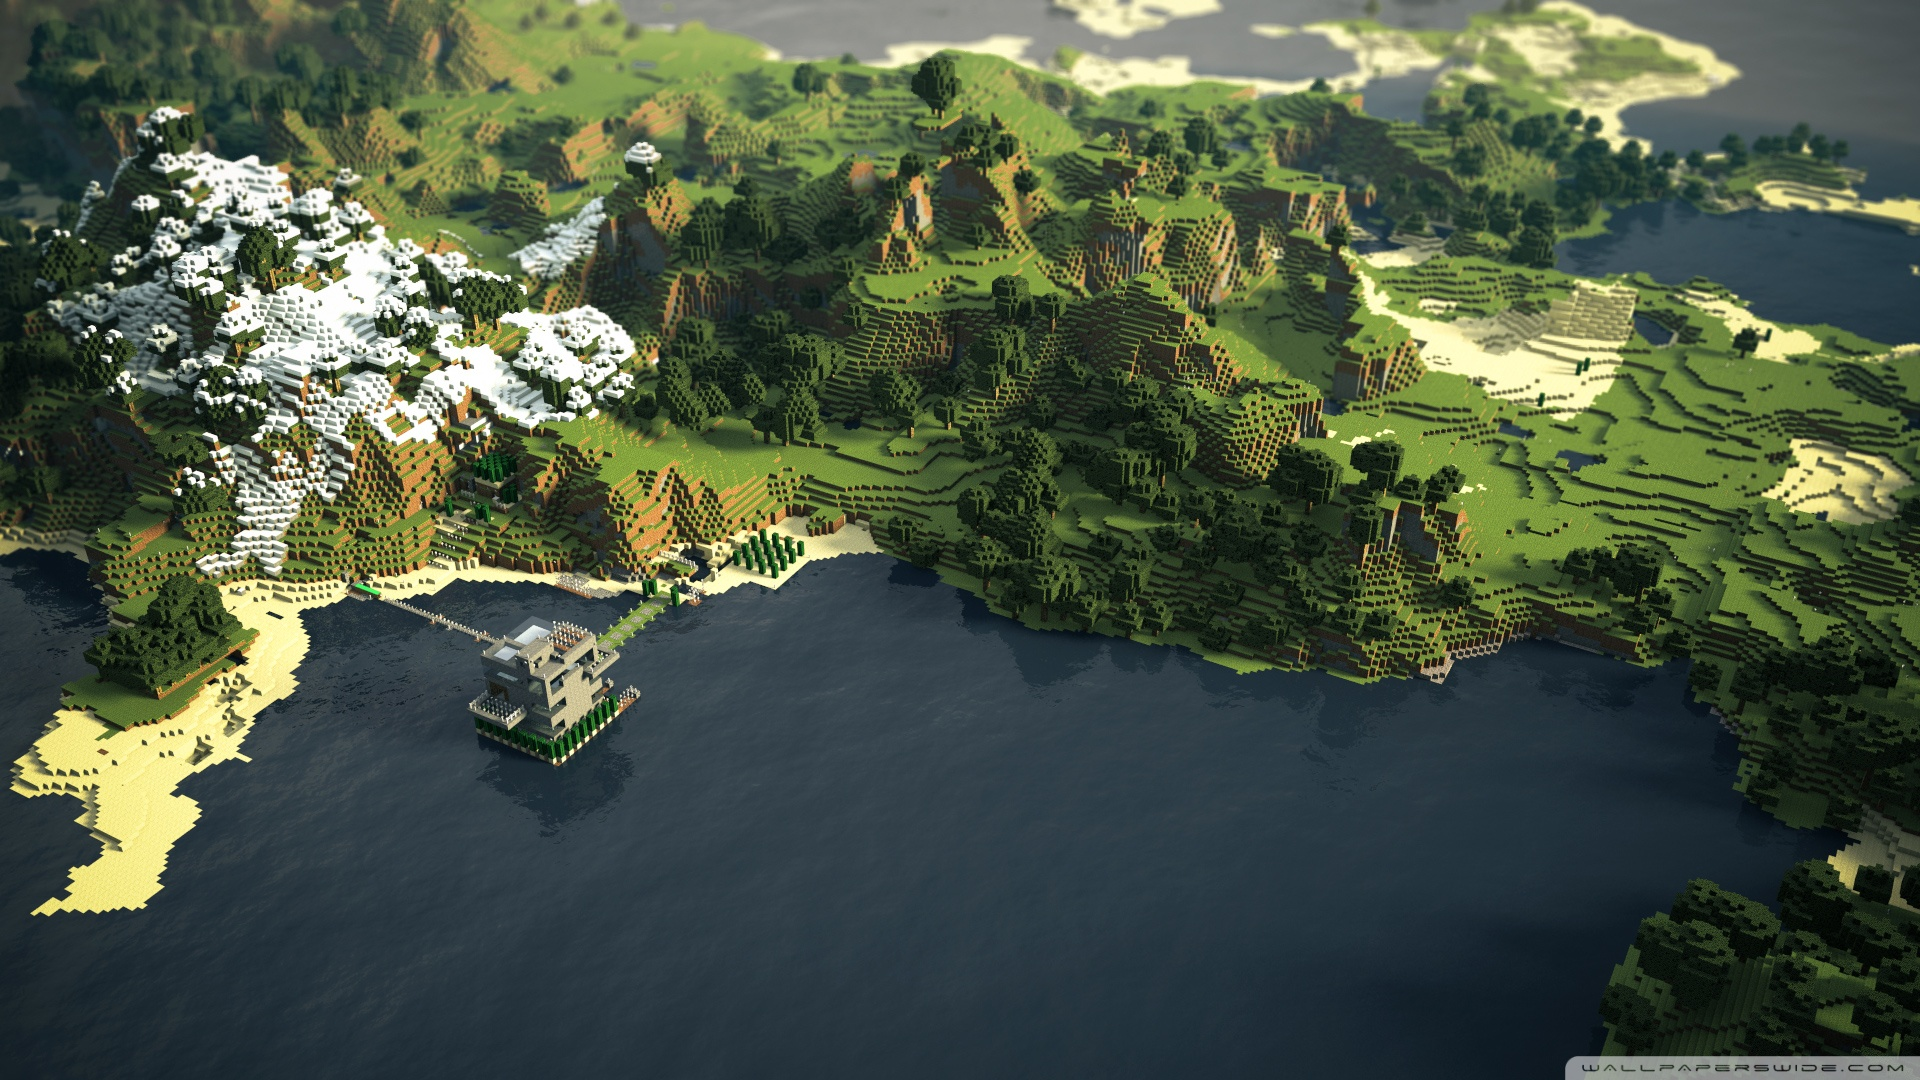 More awesome minecraft wallpapers 1 Design Utopia Trend 1920x1080